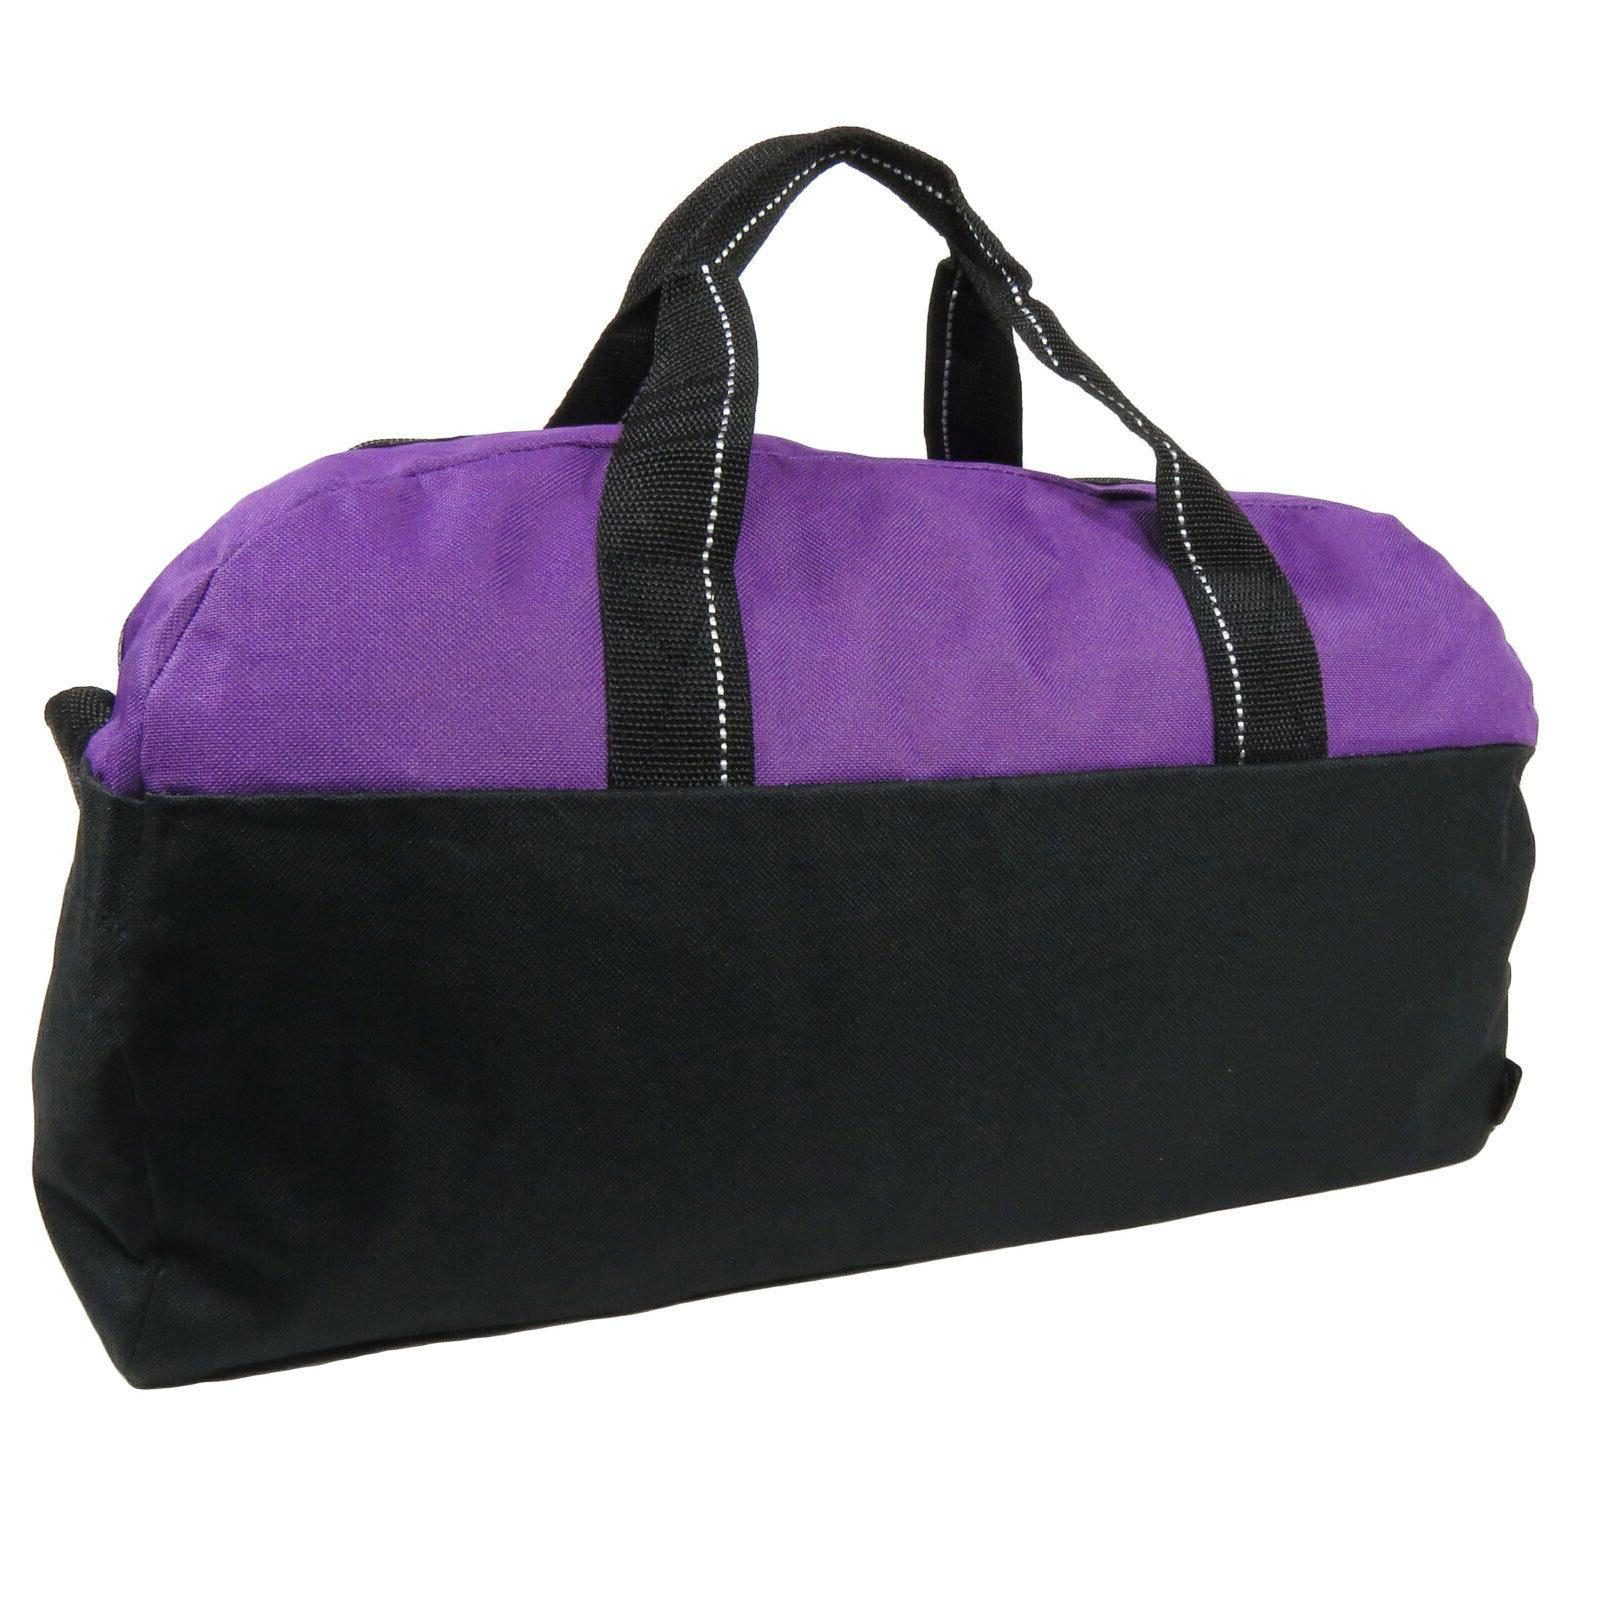 Purple/Black Workout Travel Carry Bag